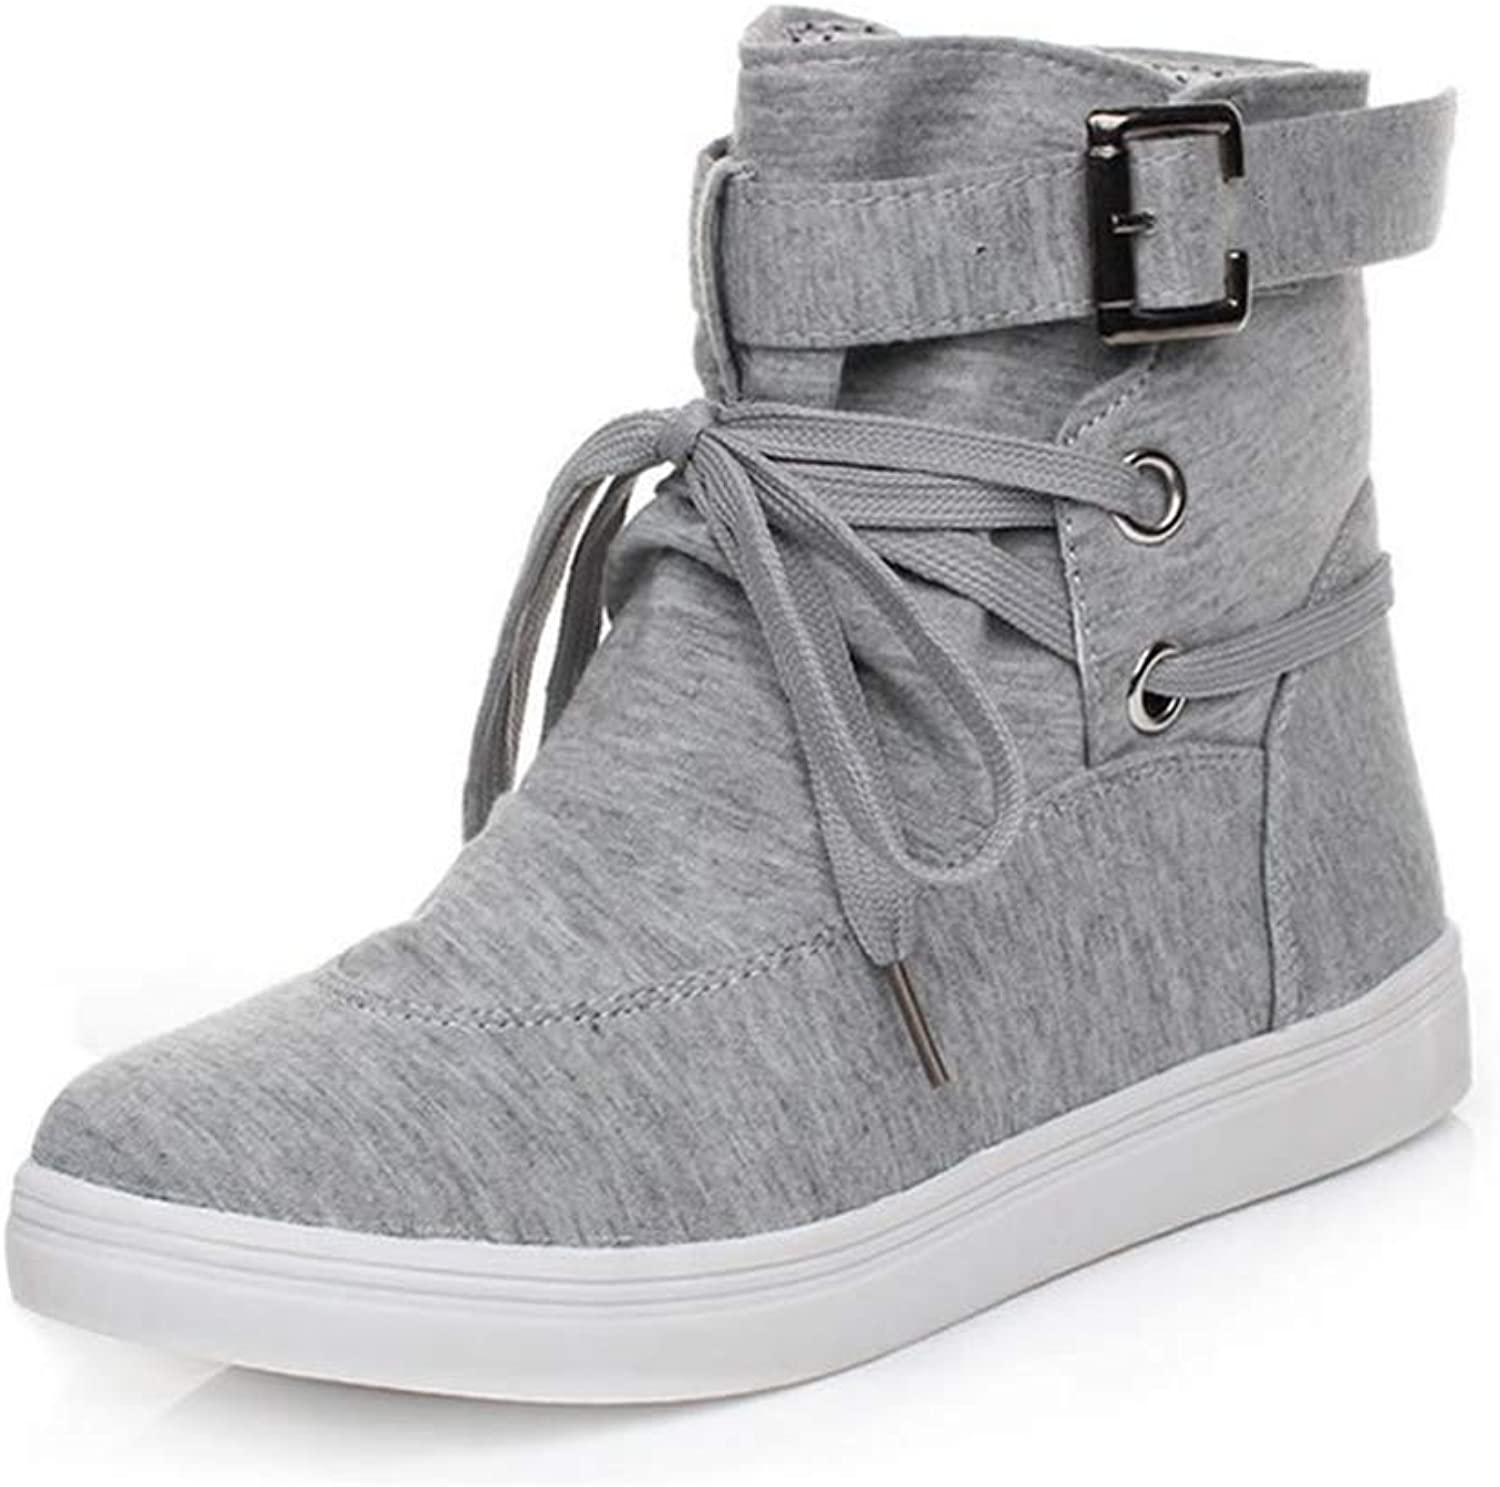 Meimeioo Woman Spring Autumn Ankle Boots Lace Up Buckle Canvas Boots High Top shoes